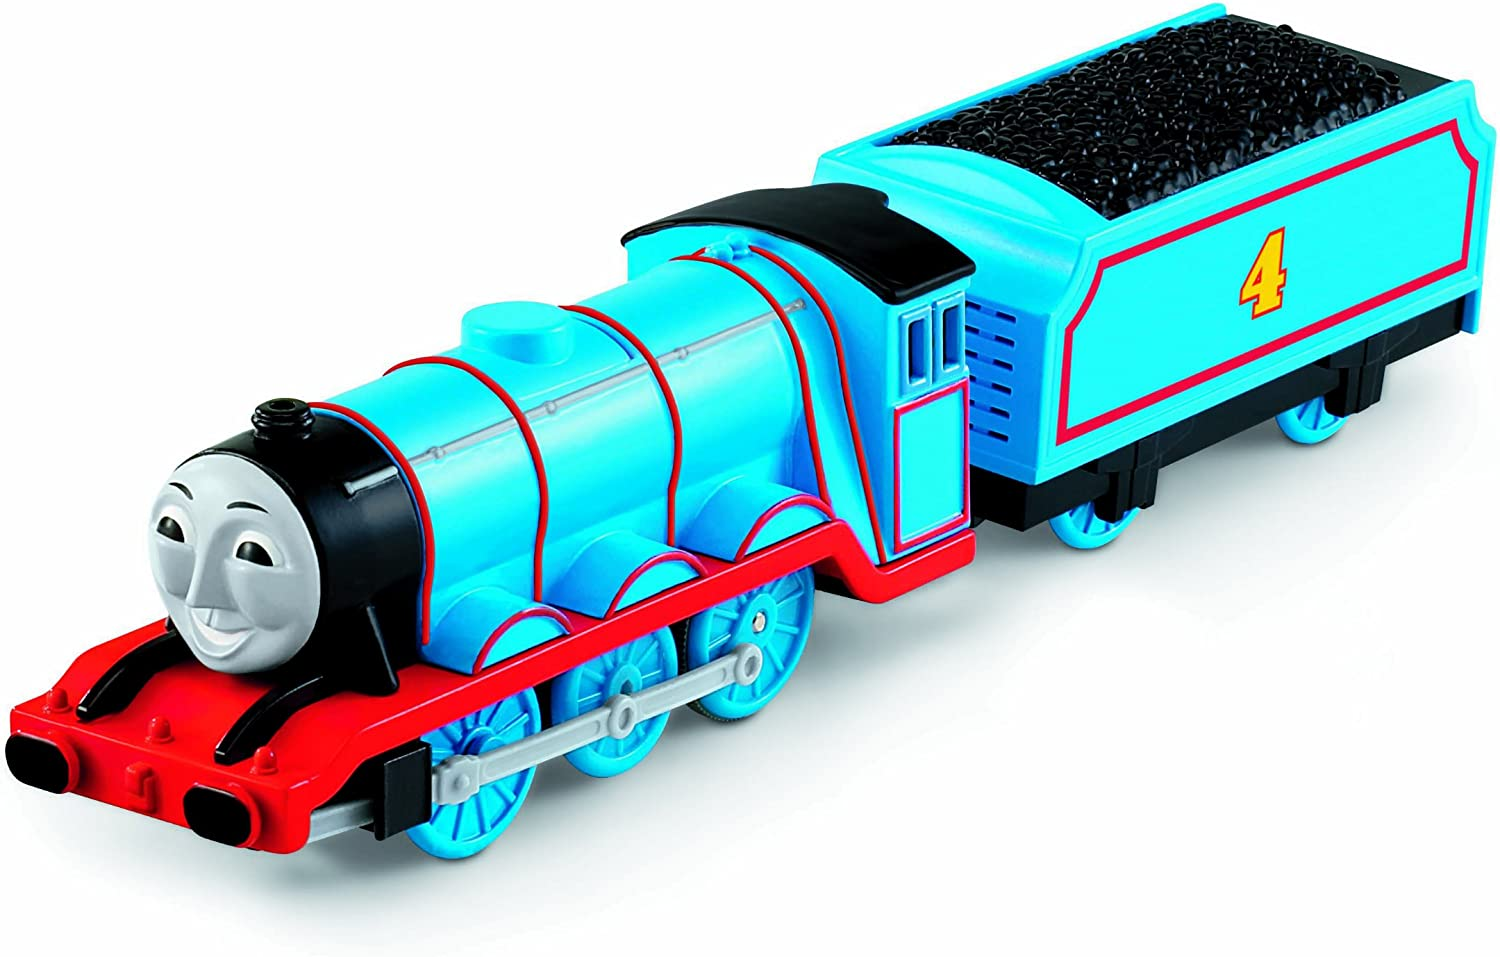 Outlet SALE Thomas Friends TrackMaster Talking Special sale item Gordon